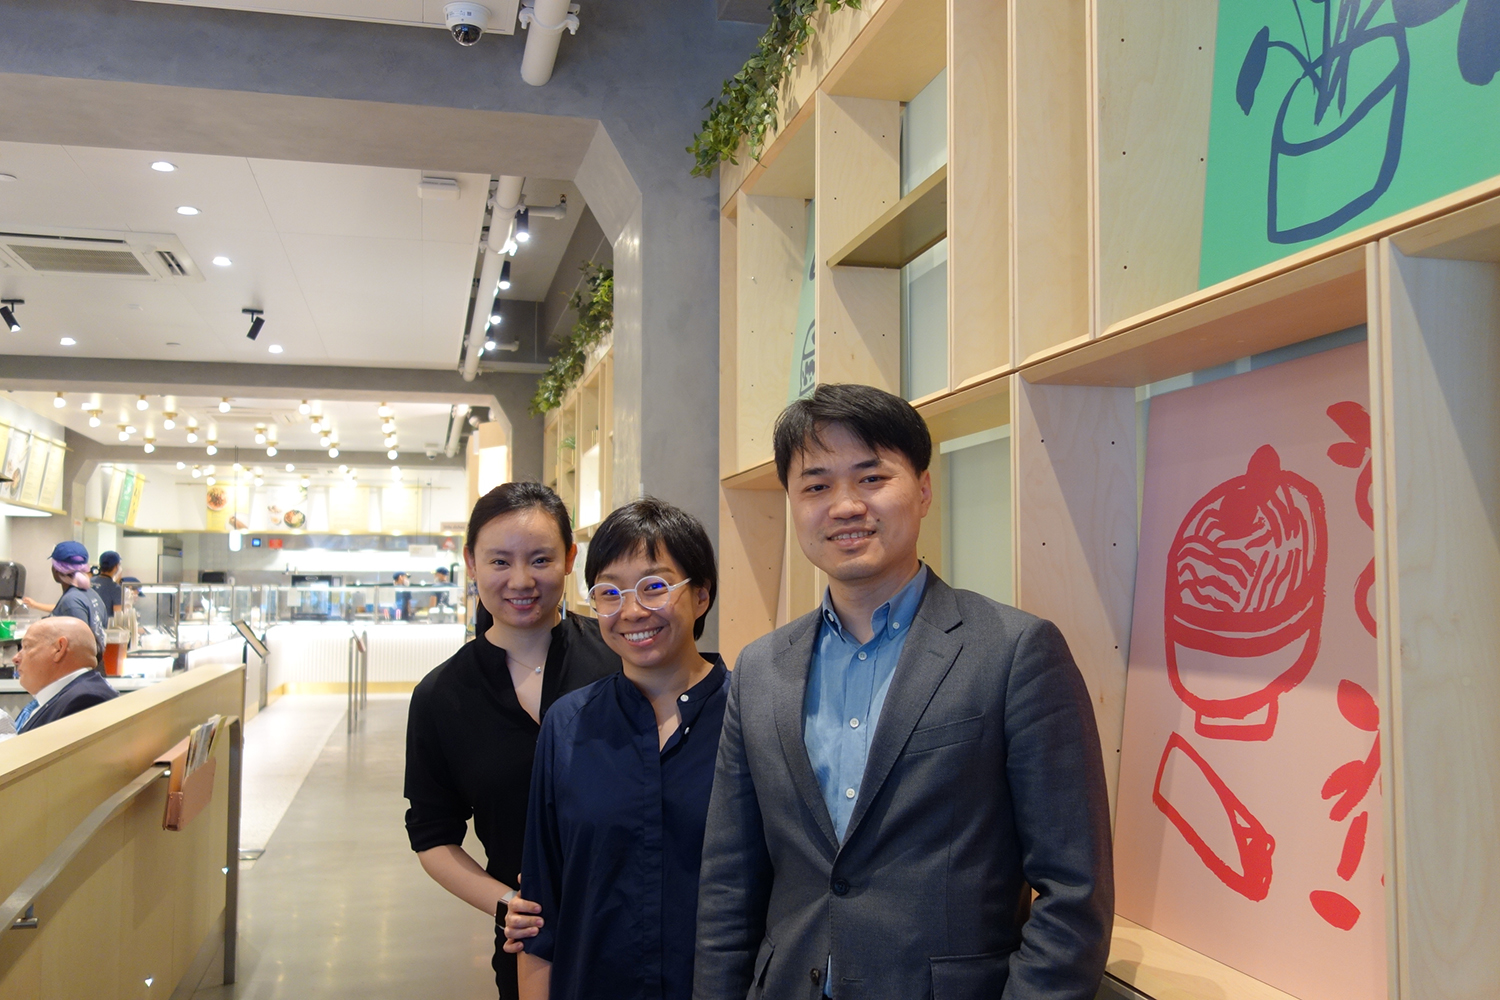 Yong Zhao, Ming Bai, and Wanting Zhang, the founders of Junzi Kitchen, at Junzi's Times Square store on May 22.